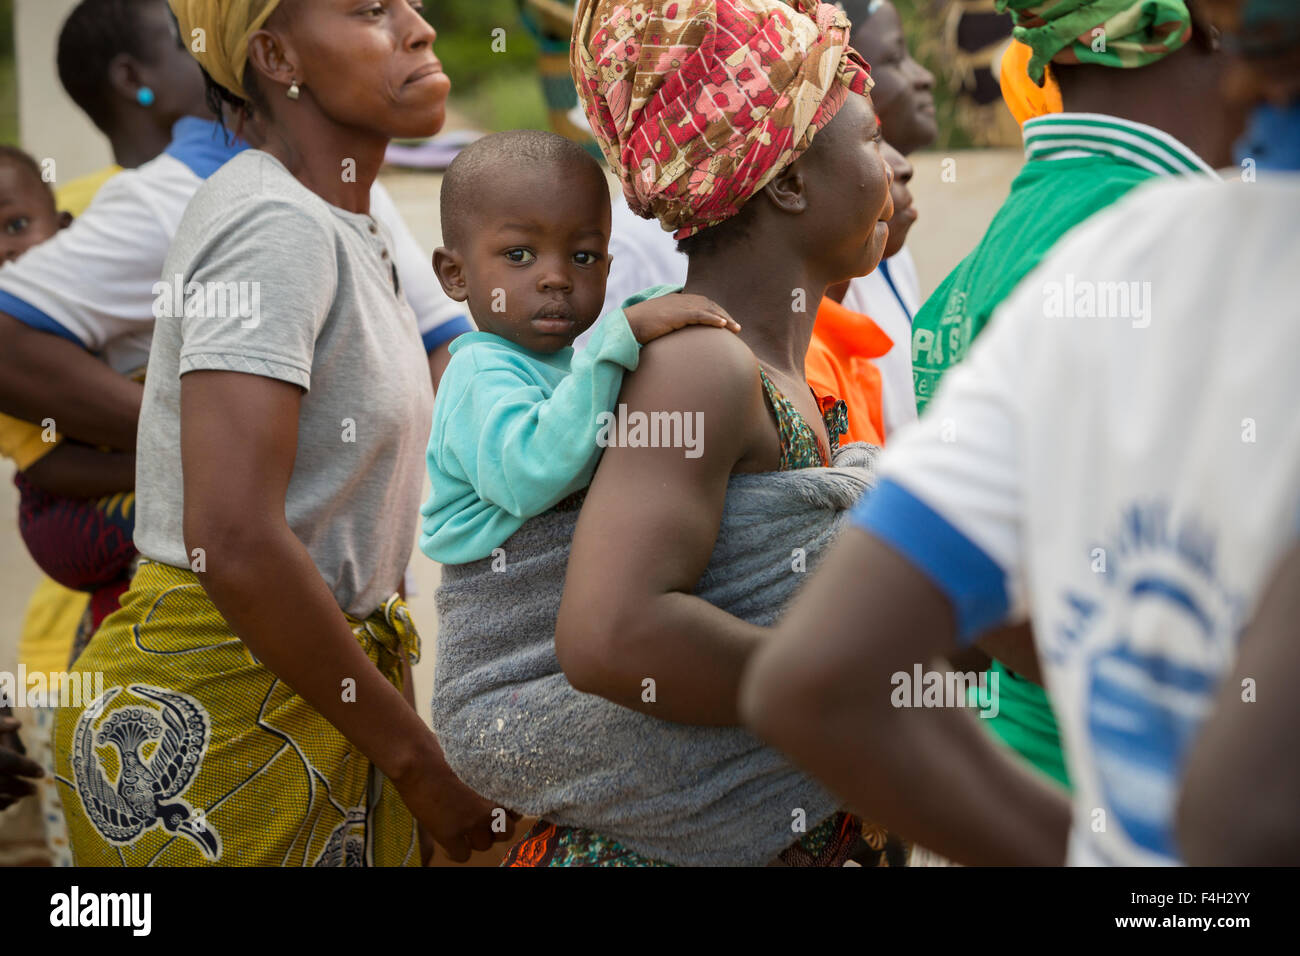 Mère et enfant de Vea Village, district Bolgatanga (Ghana). Photo Stock